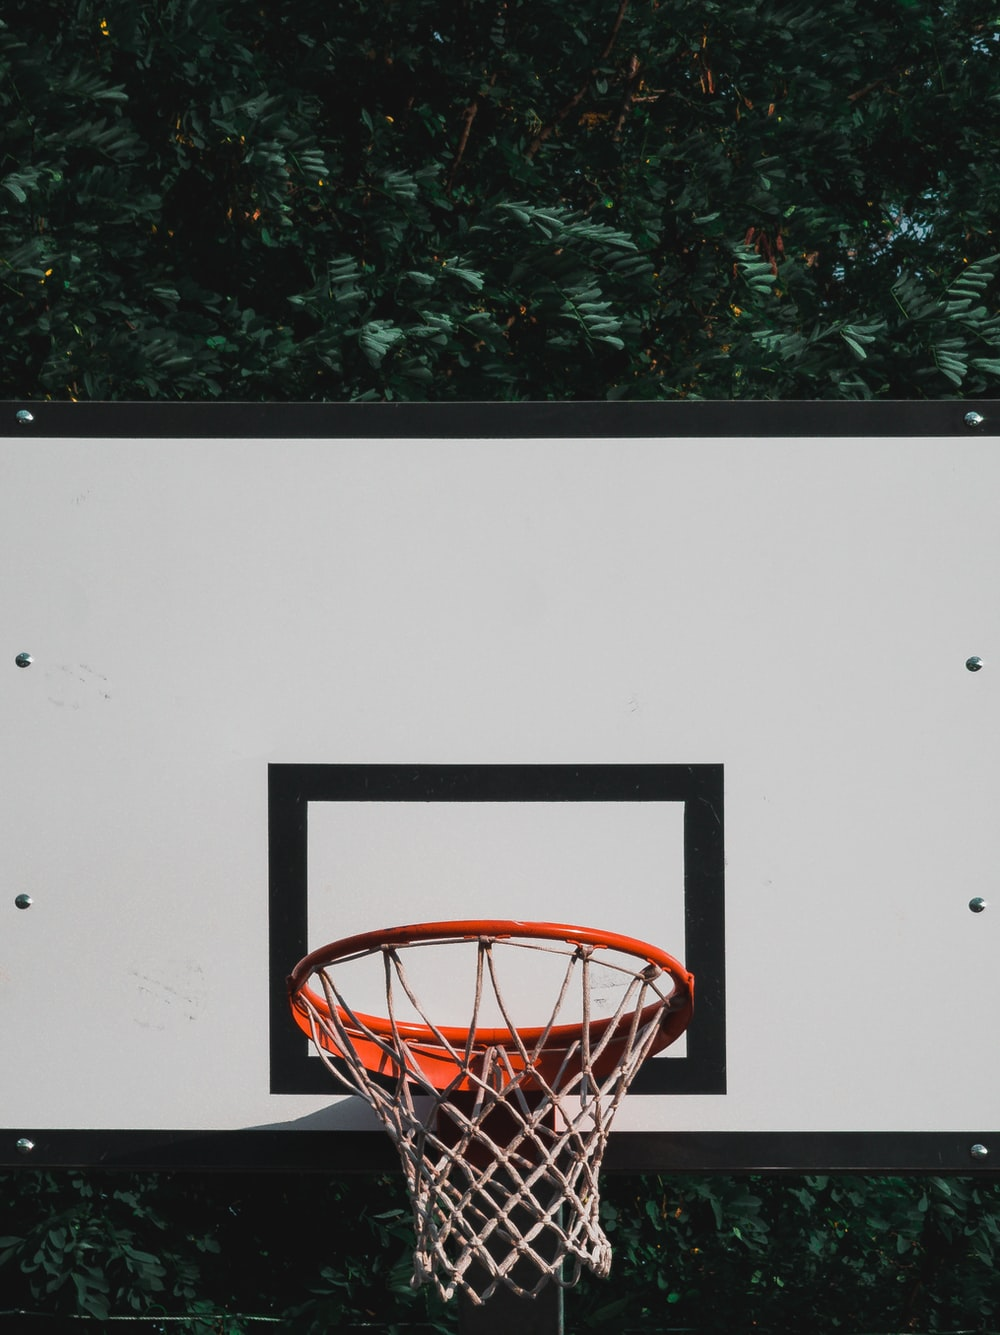 black, white, and red basketball hoop